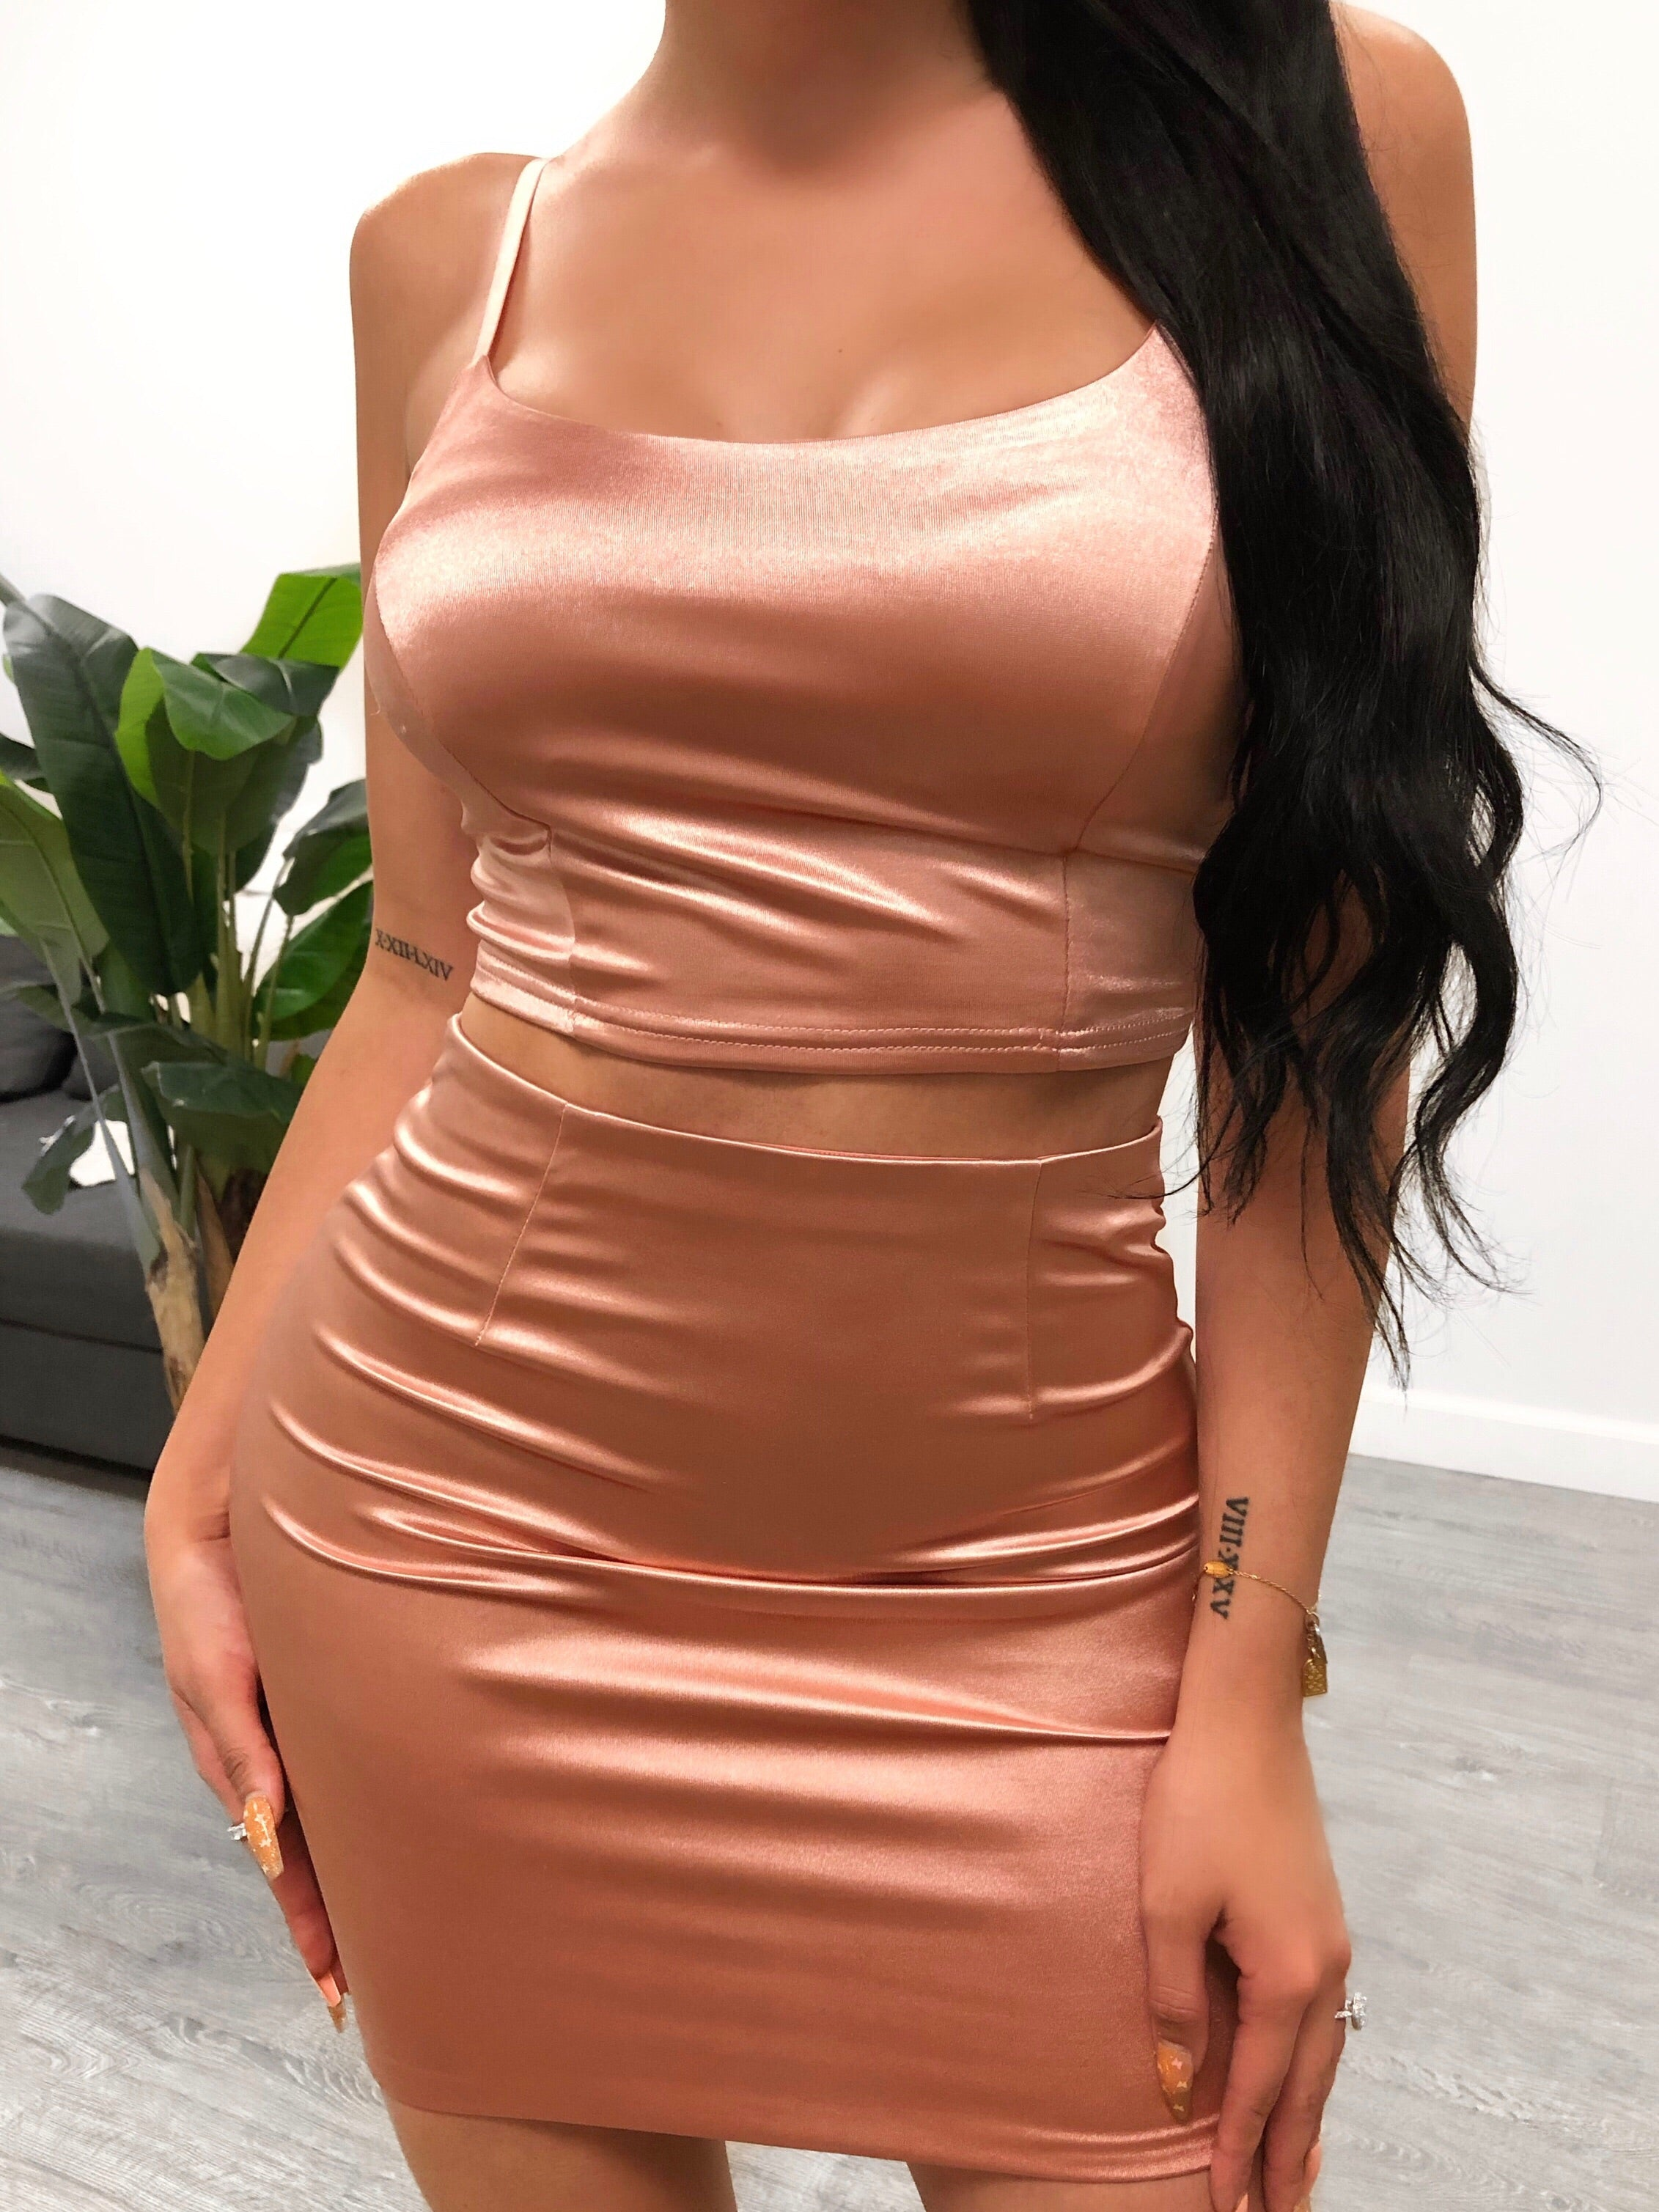 satin 2 piece, pink, spaghetti strap, scoop neck, crop top, high waist skirt, mid thigh length